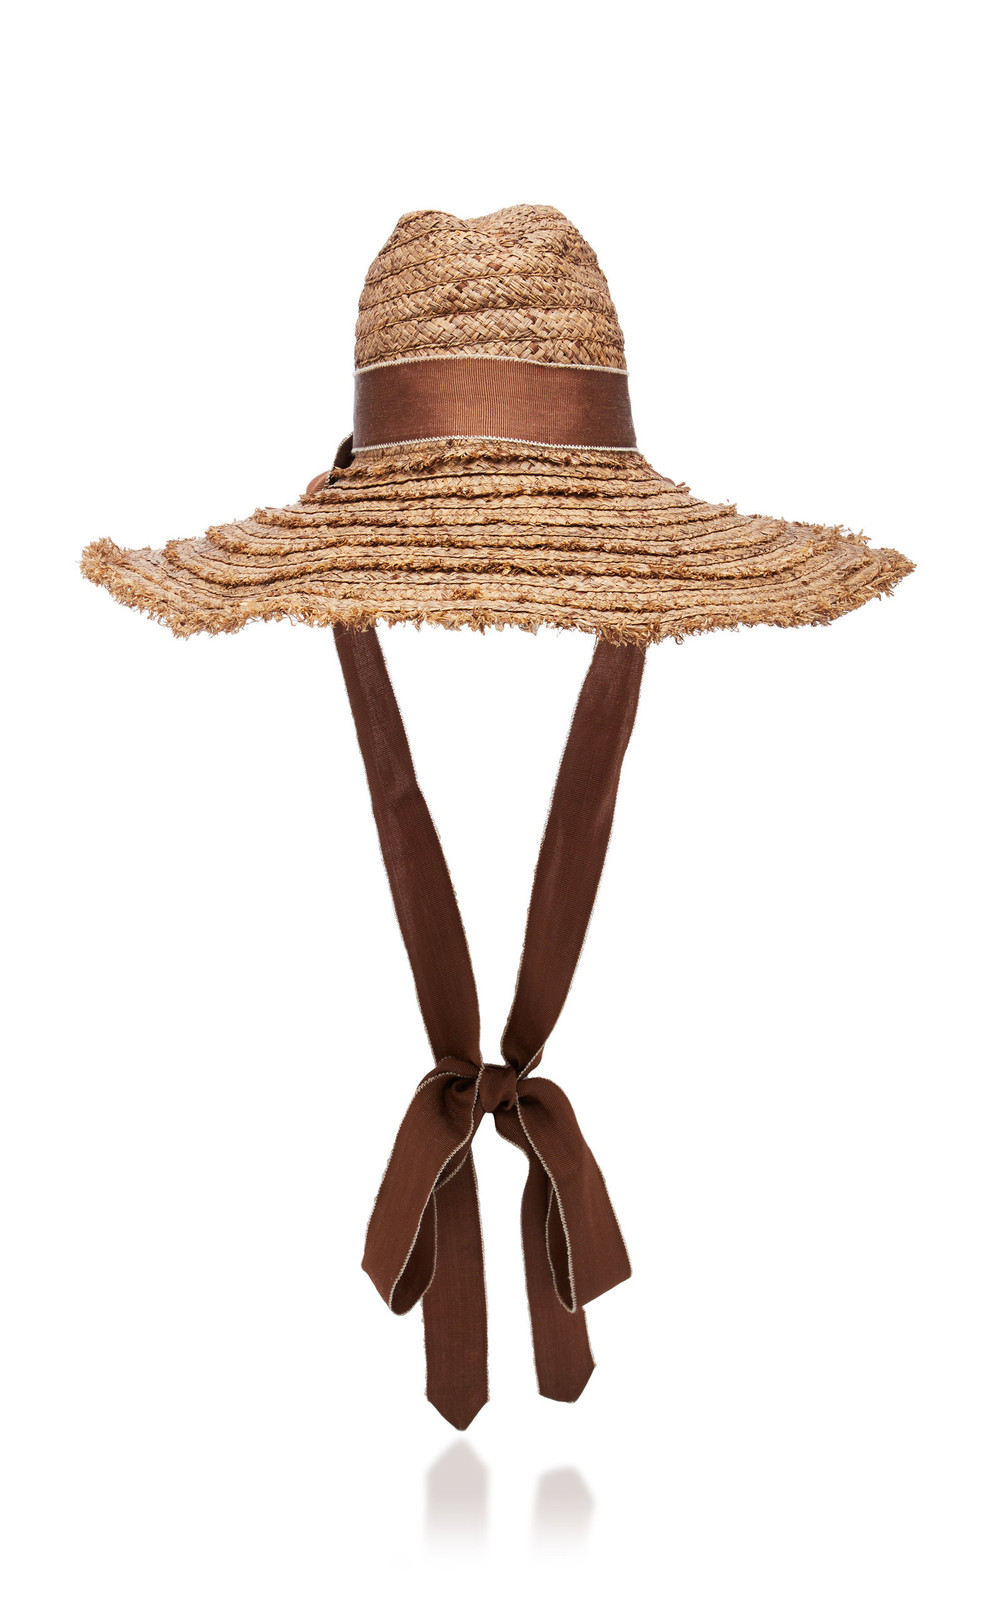 Filu Hats Mauritius Grosgrain-Trimmed Straw Hat in brown